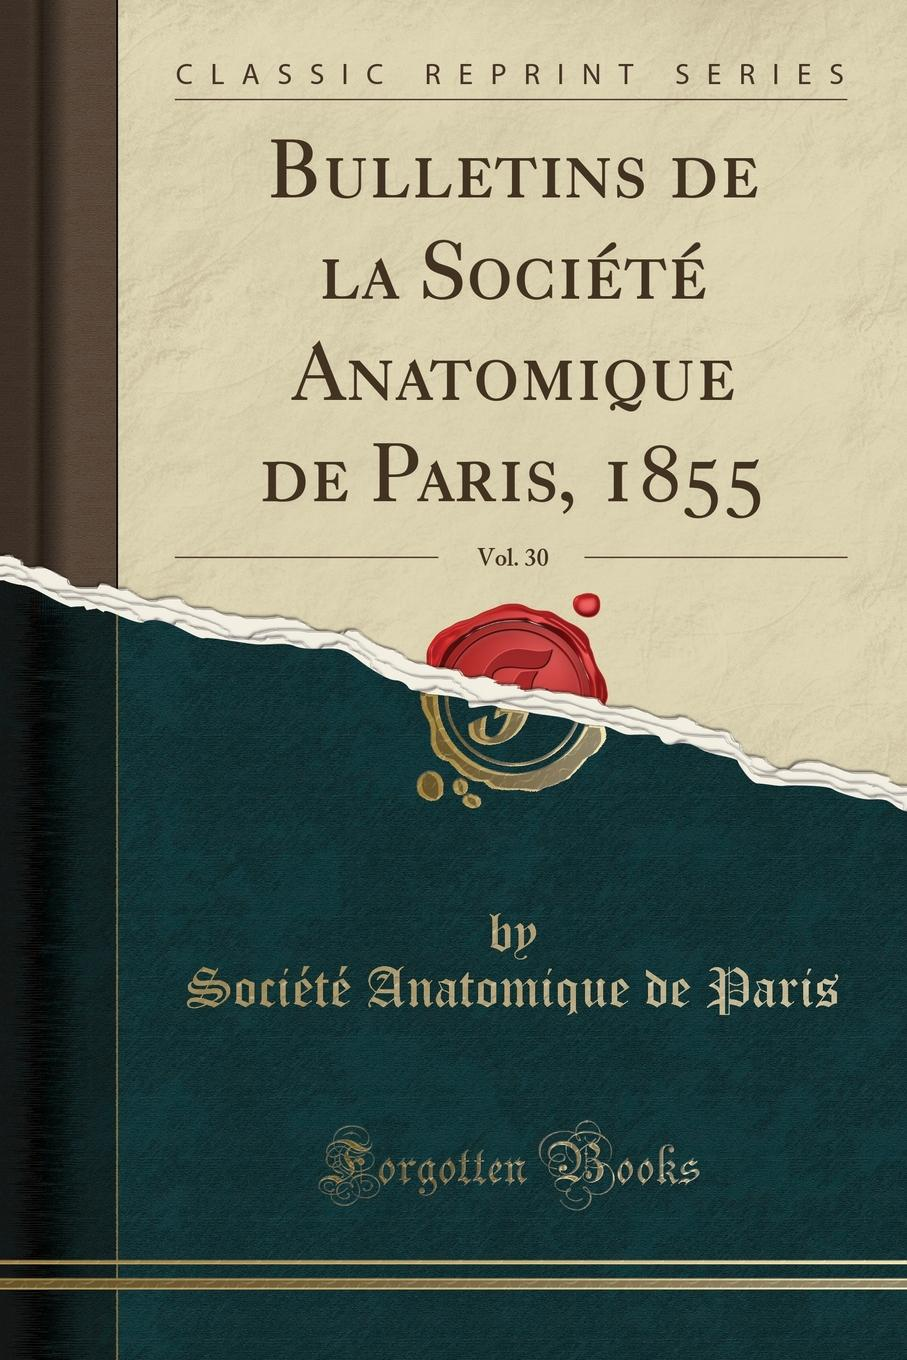 Société Anatomique de Paris Bulletins de la Societe Anatomique de Paris, 1855, Vol. 30 (Classic Reprint)